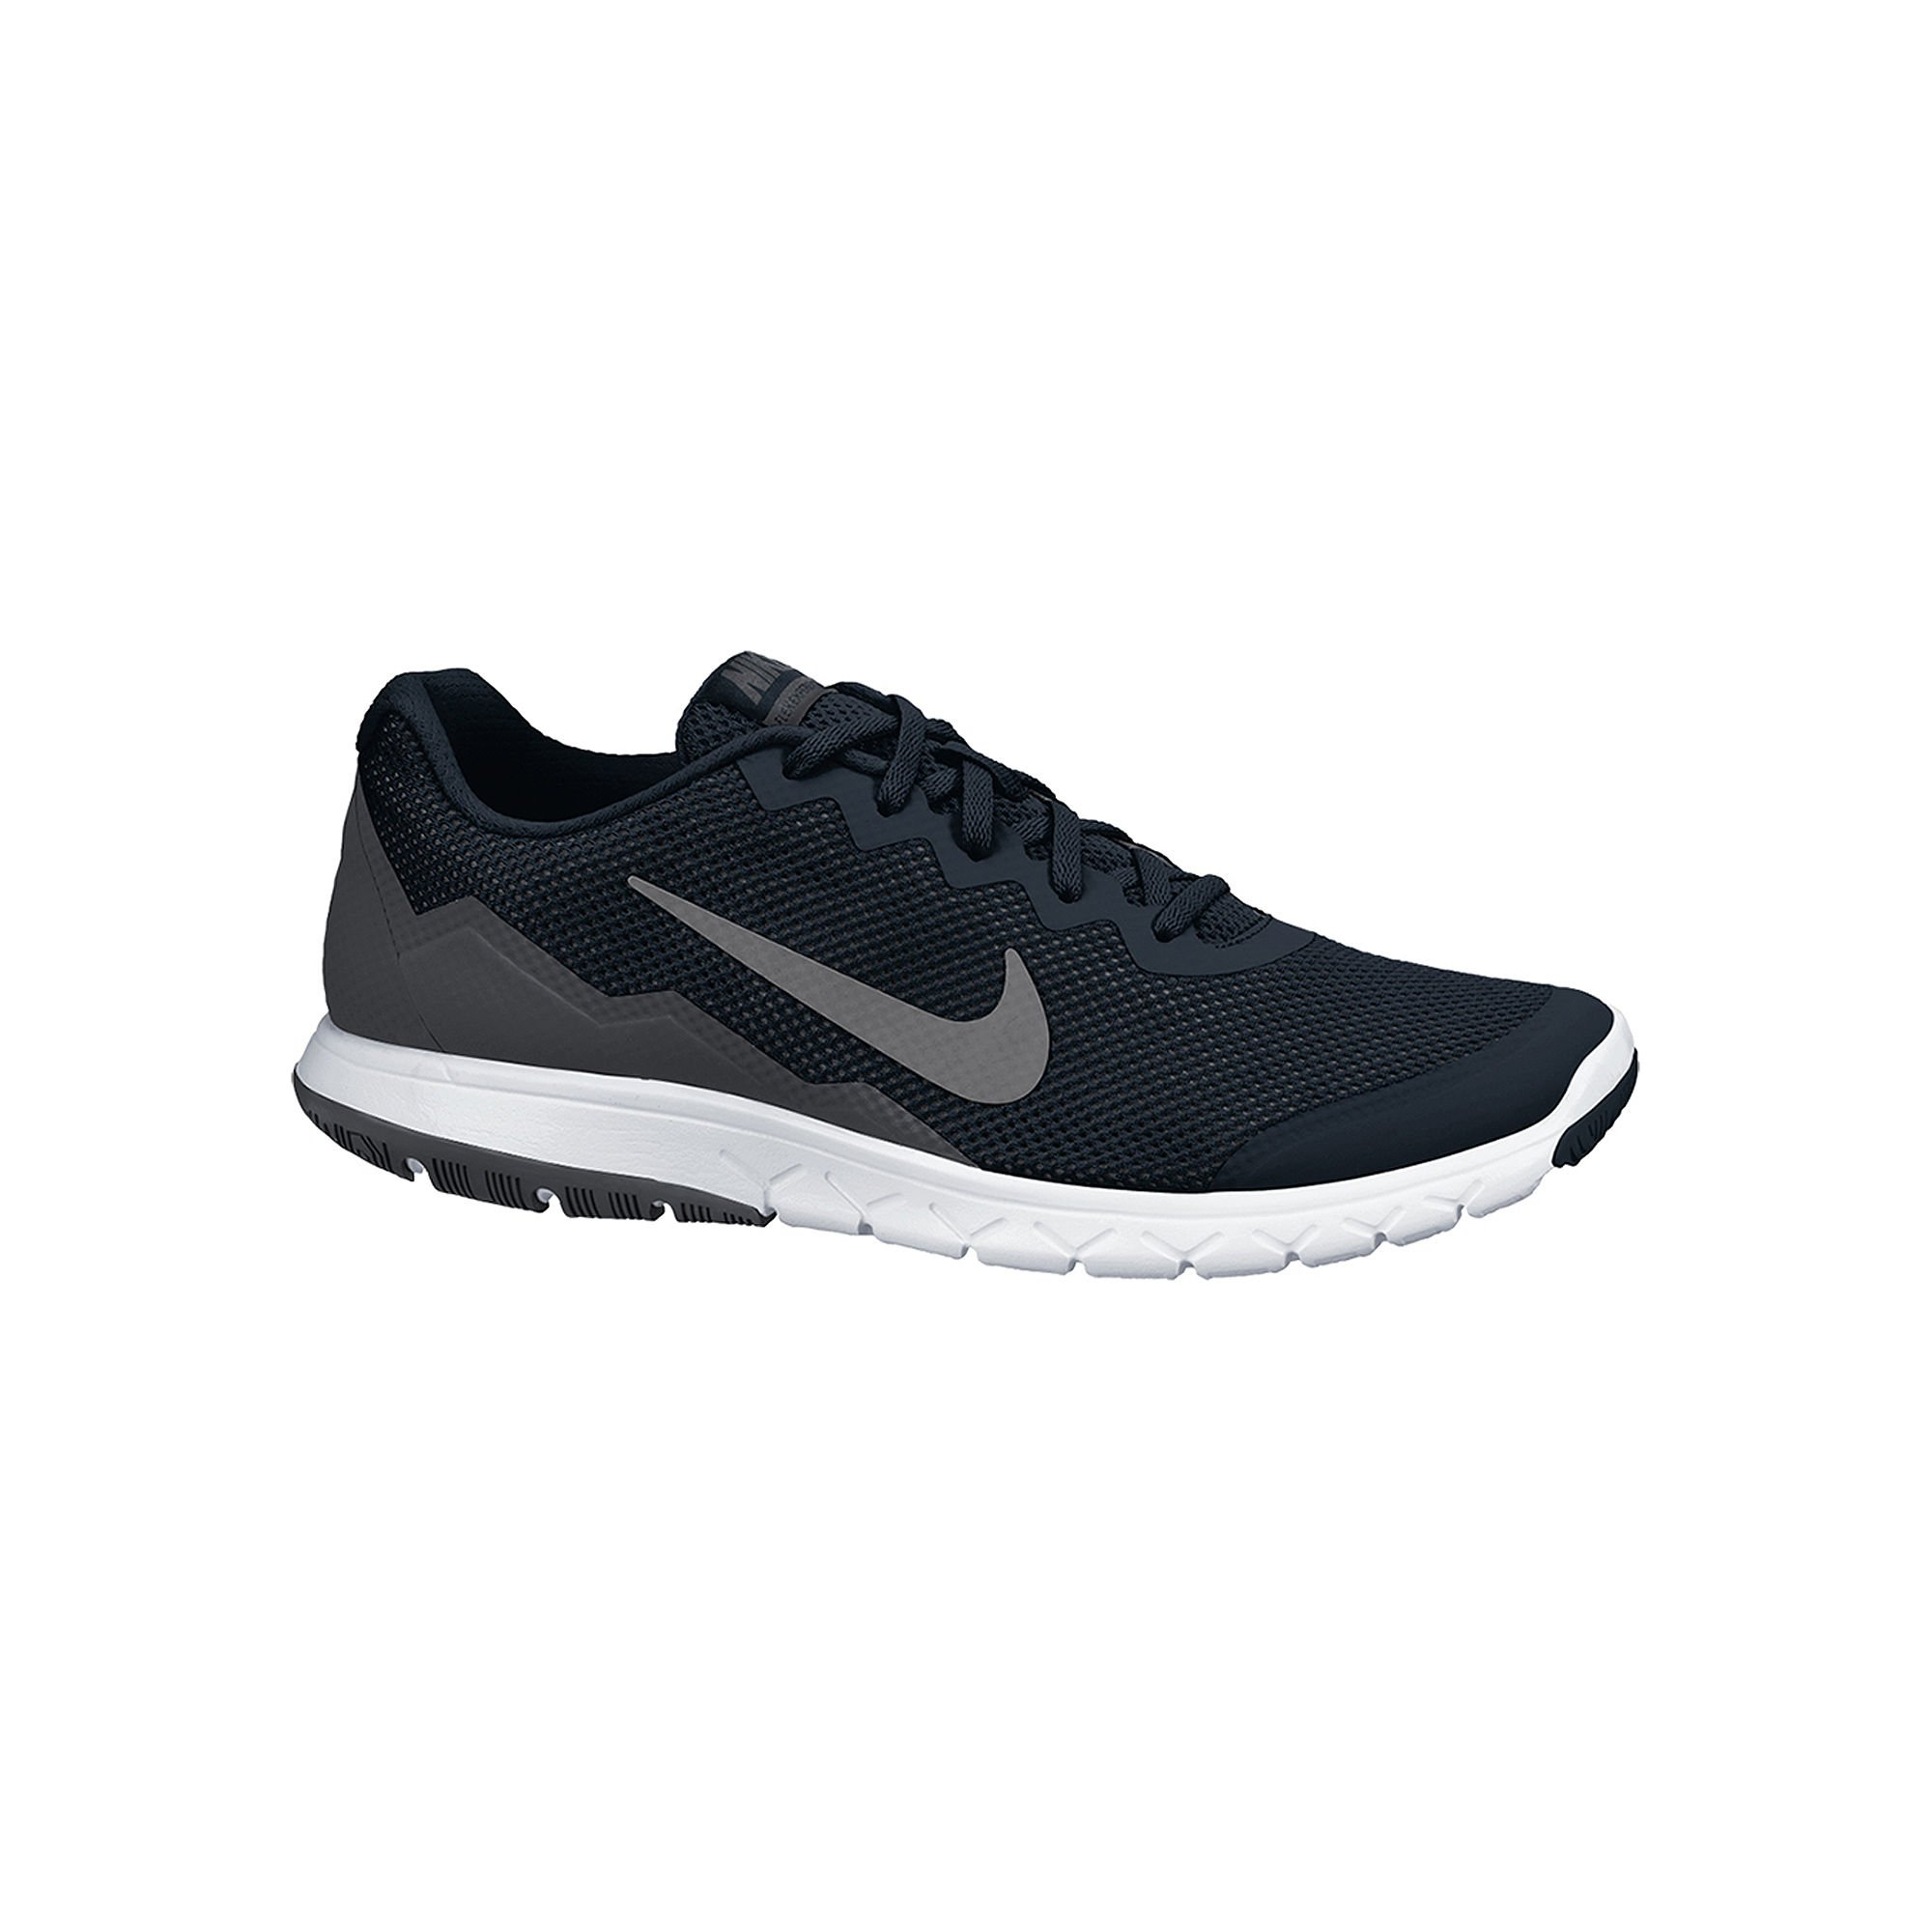 size 40 a09b8 07e6b Galleon - Nike Men s Flex Experience RN 4 (Black Mtlc Drk Gry Anthracite  White) Running Shoe, 6 B(M) US